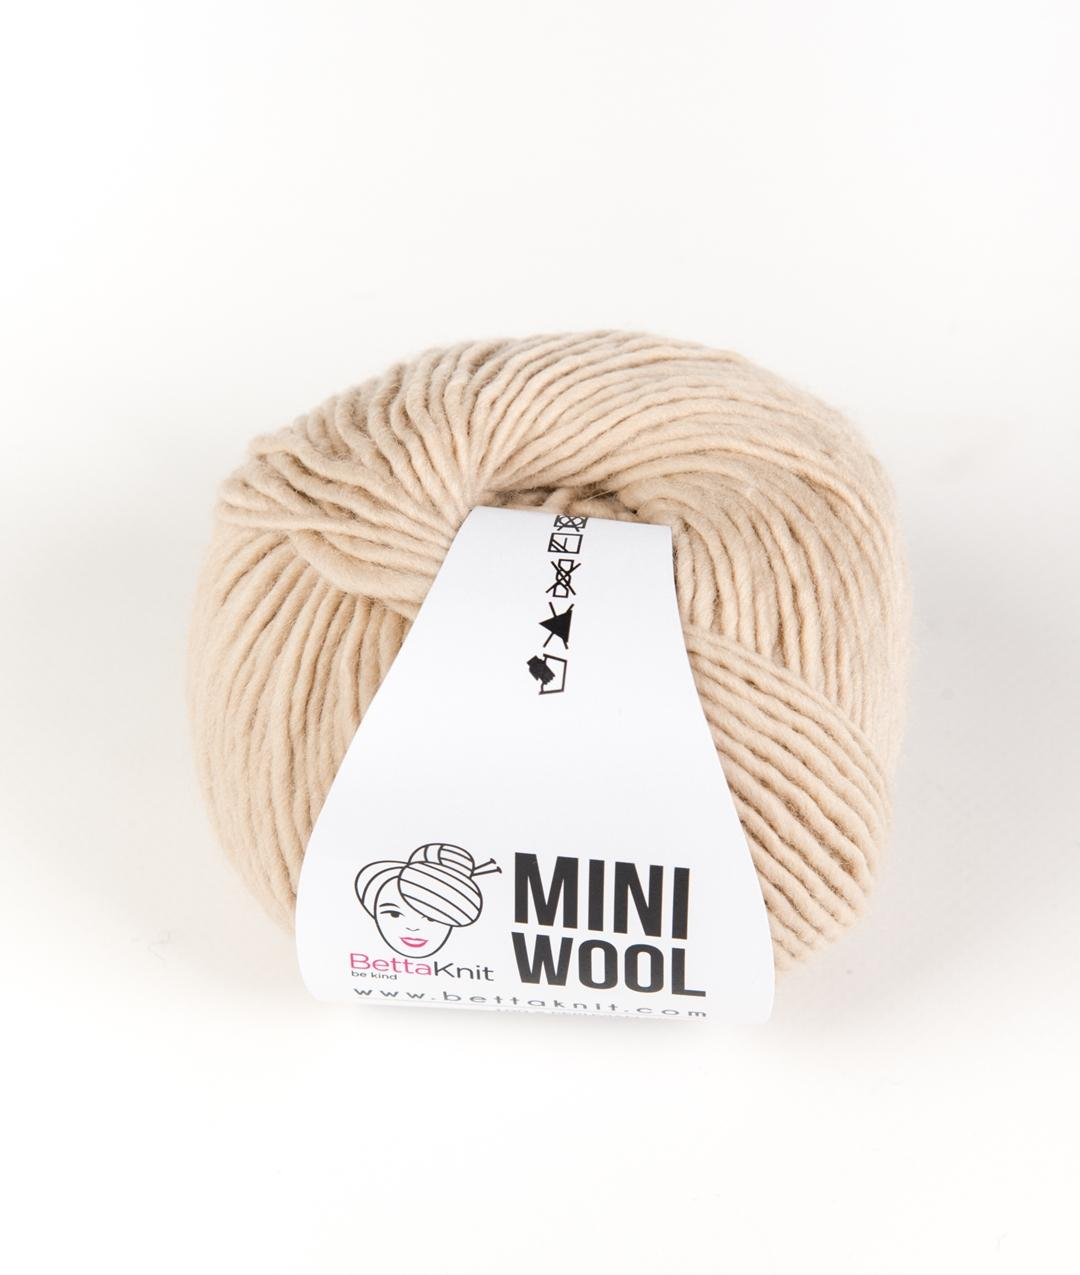 Yarns - Yarn pack without Needles Yarns - Yarn pack without Needles  - Mini Wool Pack - 20 gomitoli  - 1